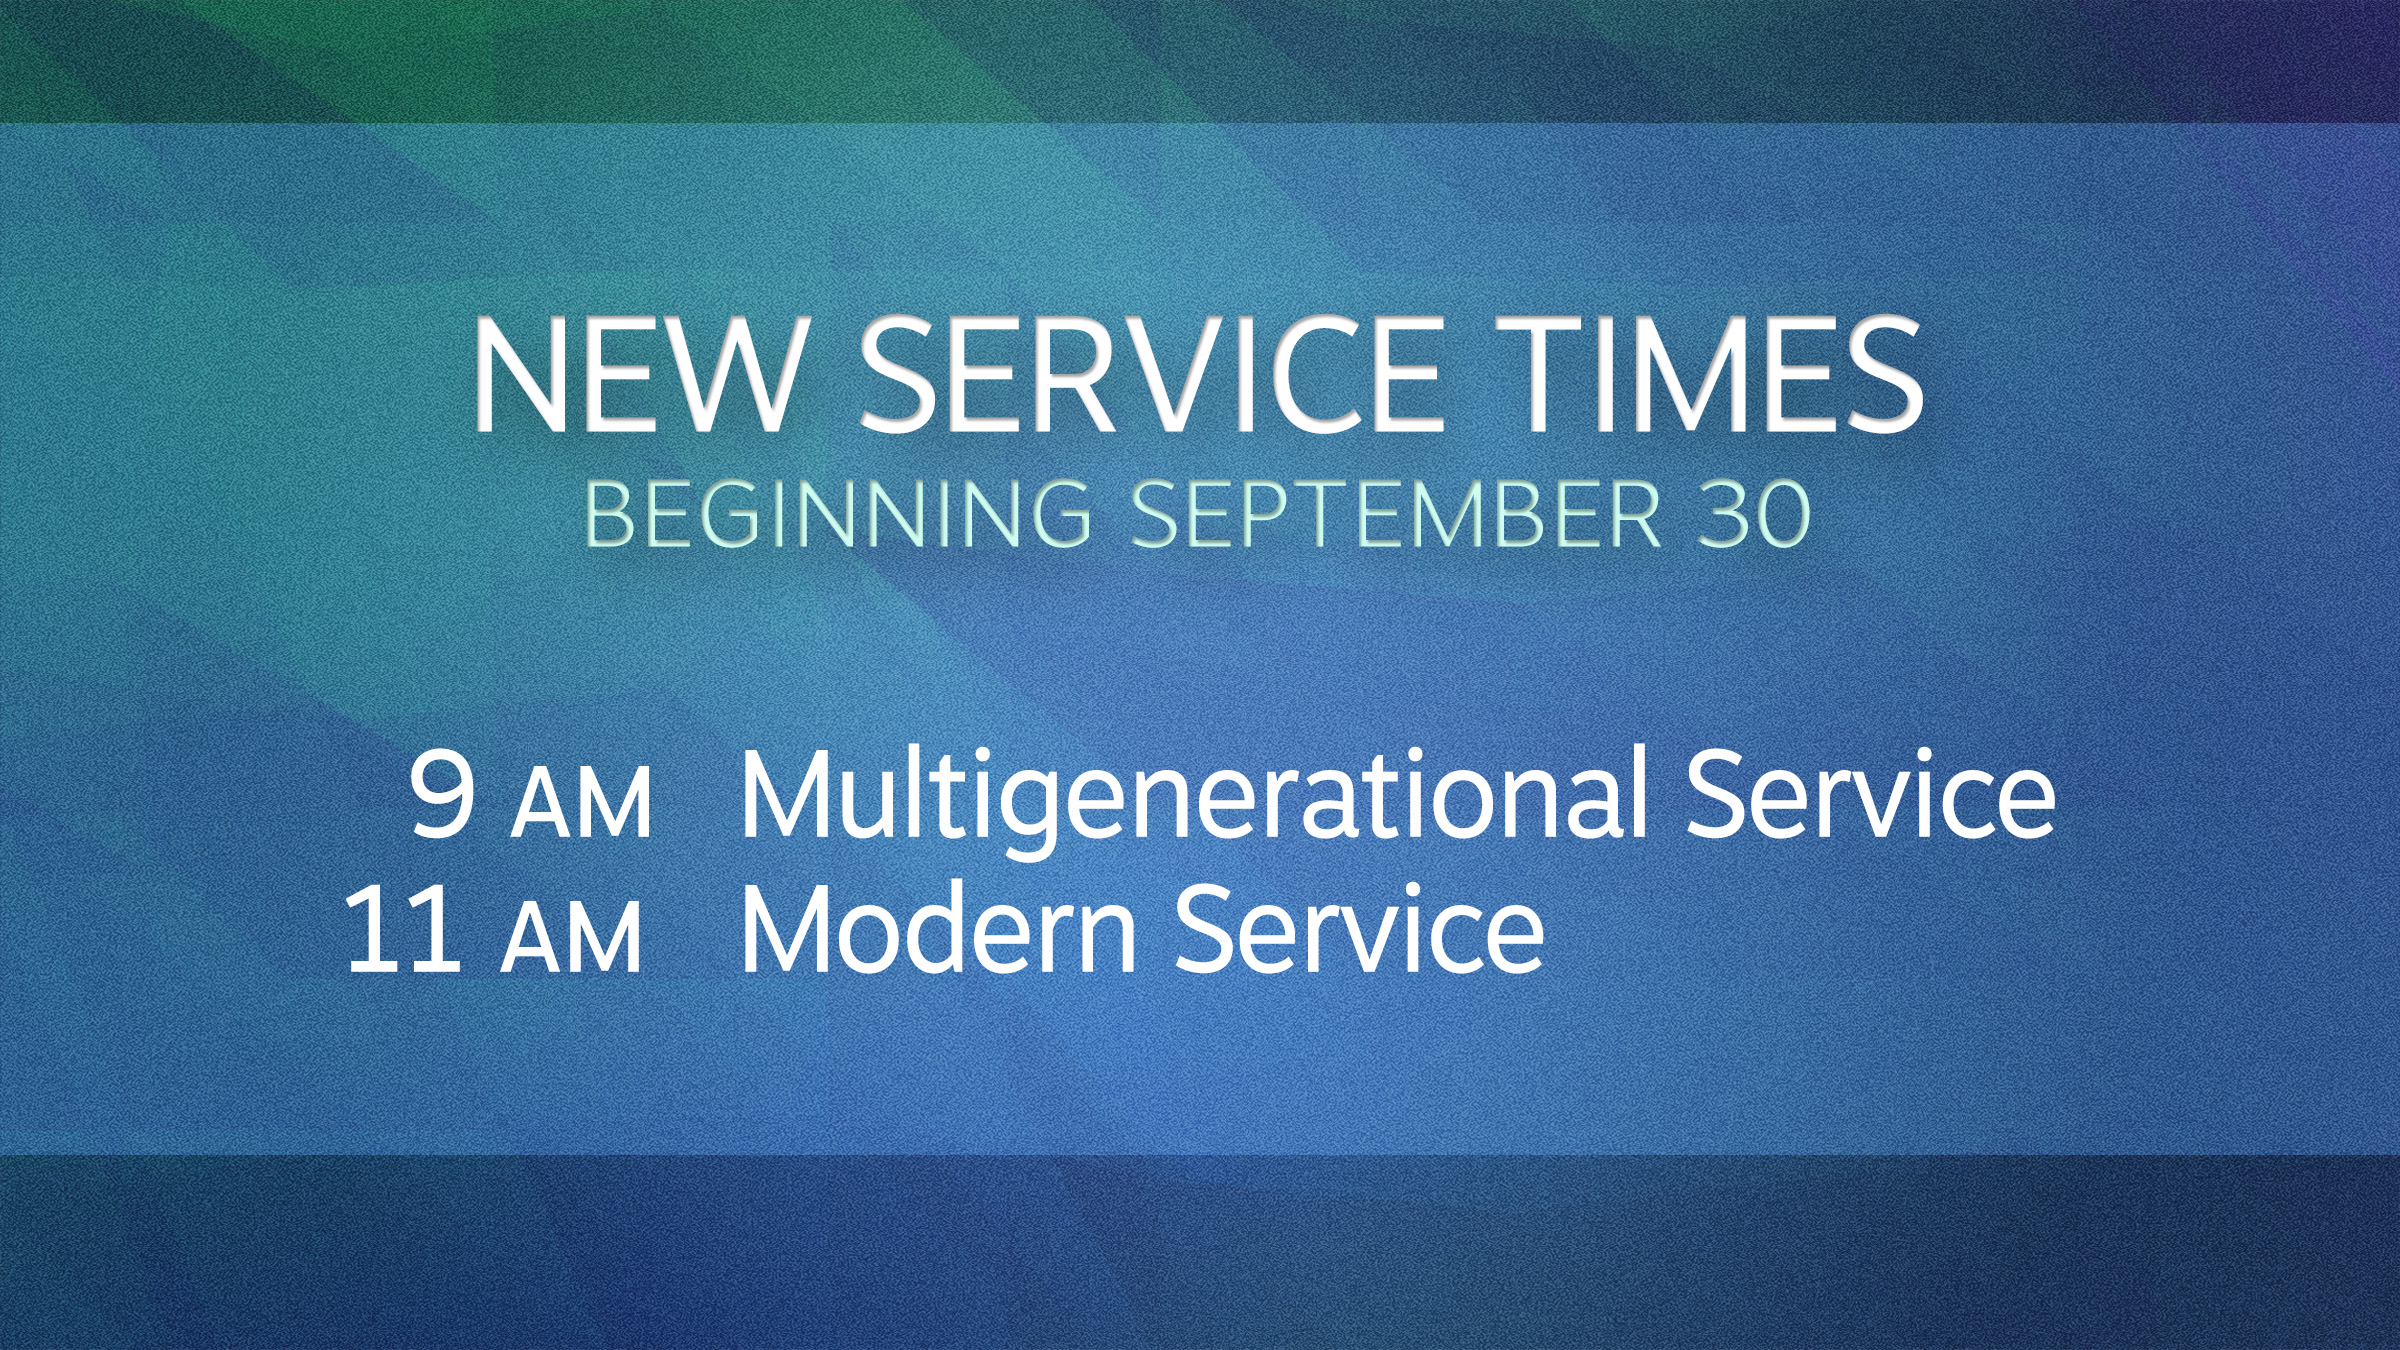 New Service Times Begin September 30